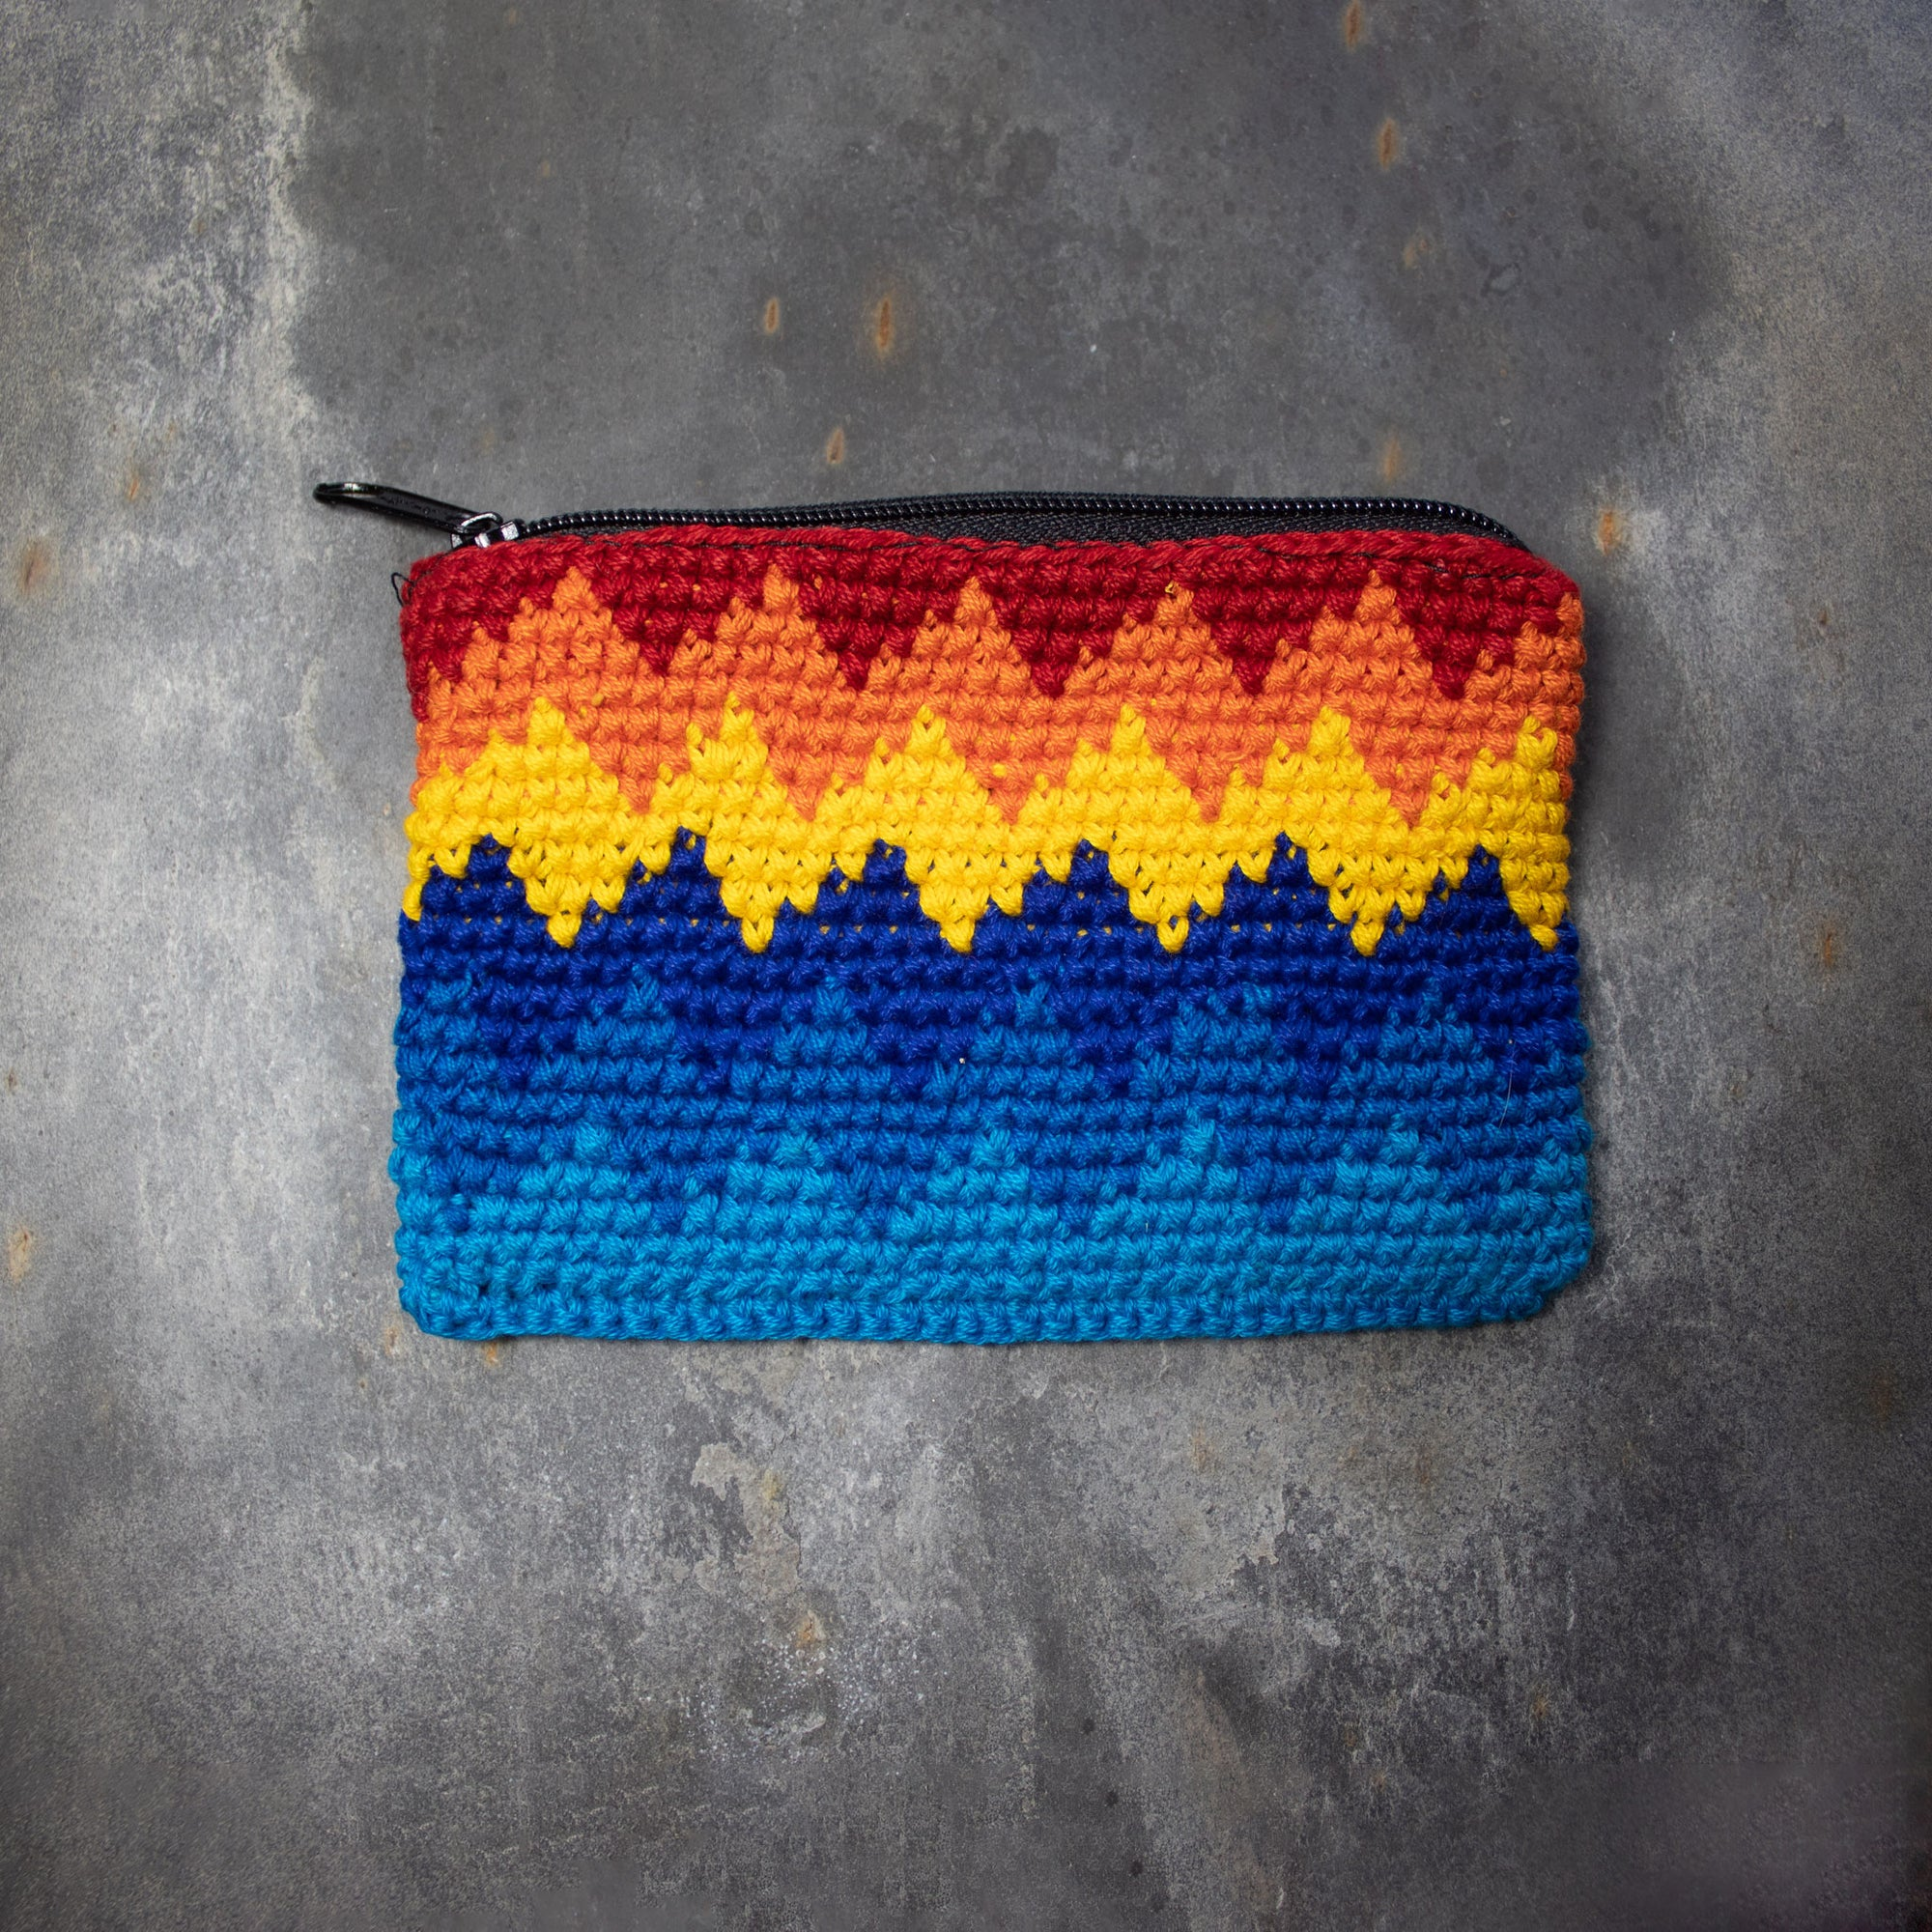 Rectangular Crochet Coin Purse - Blue & Red | Purse - The Naughty Shrew